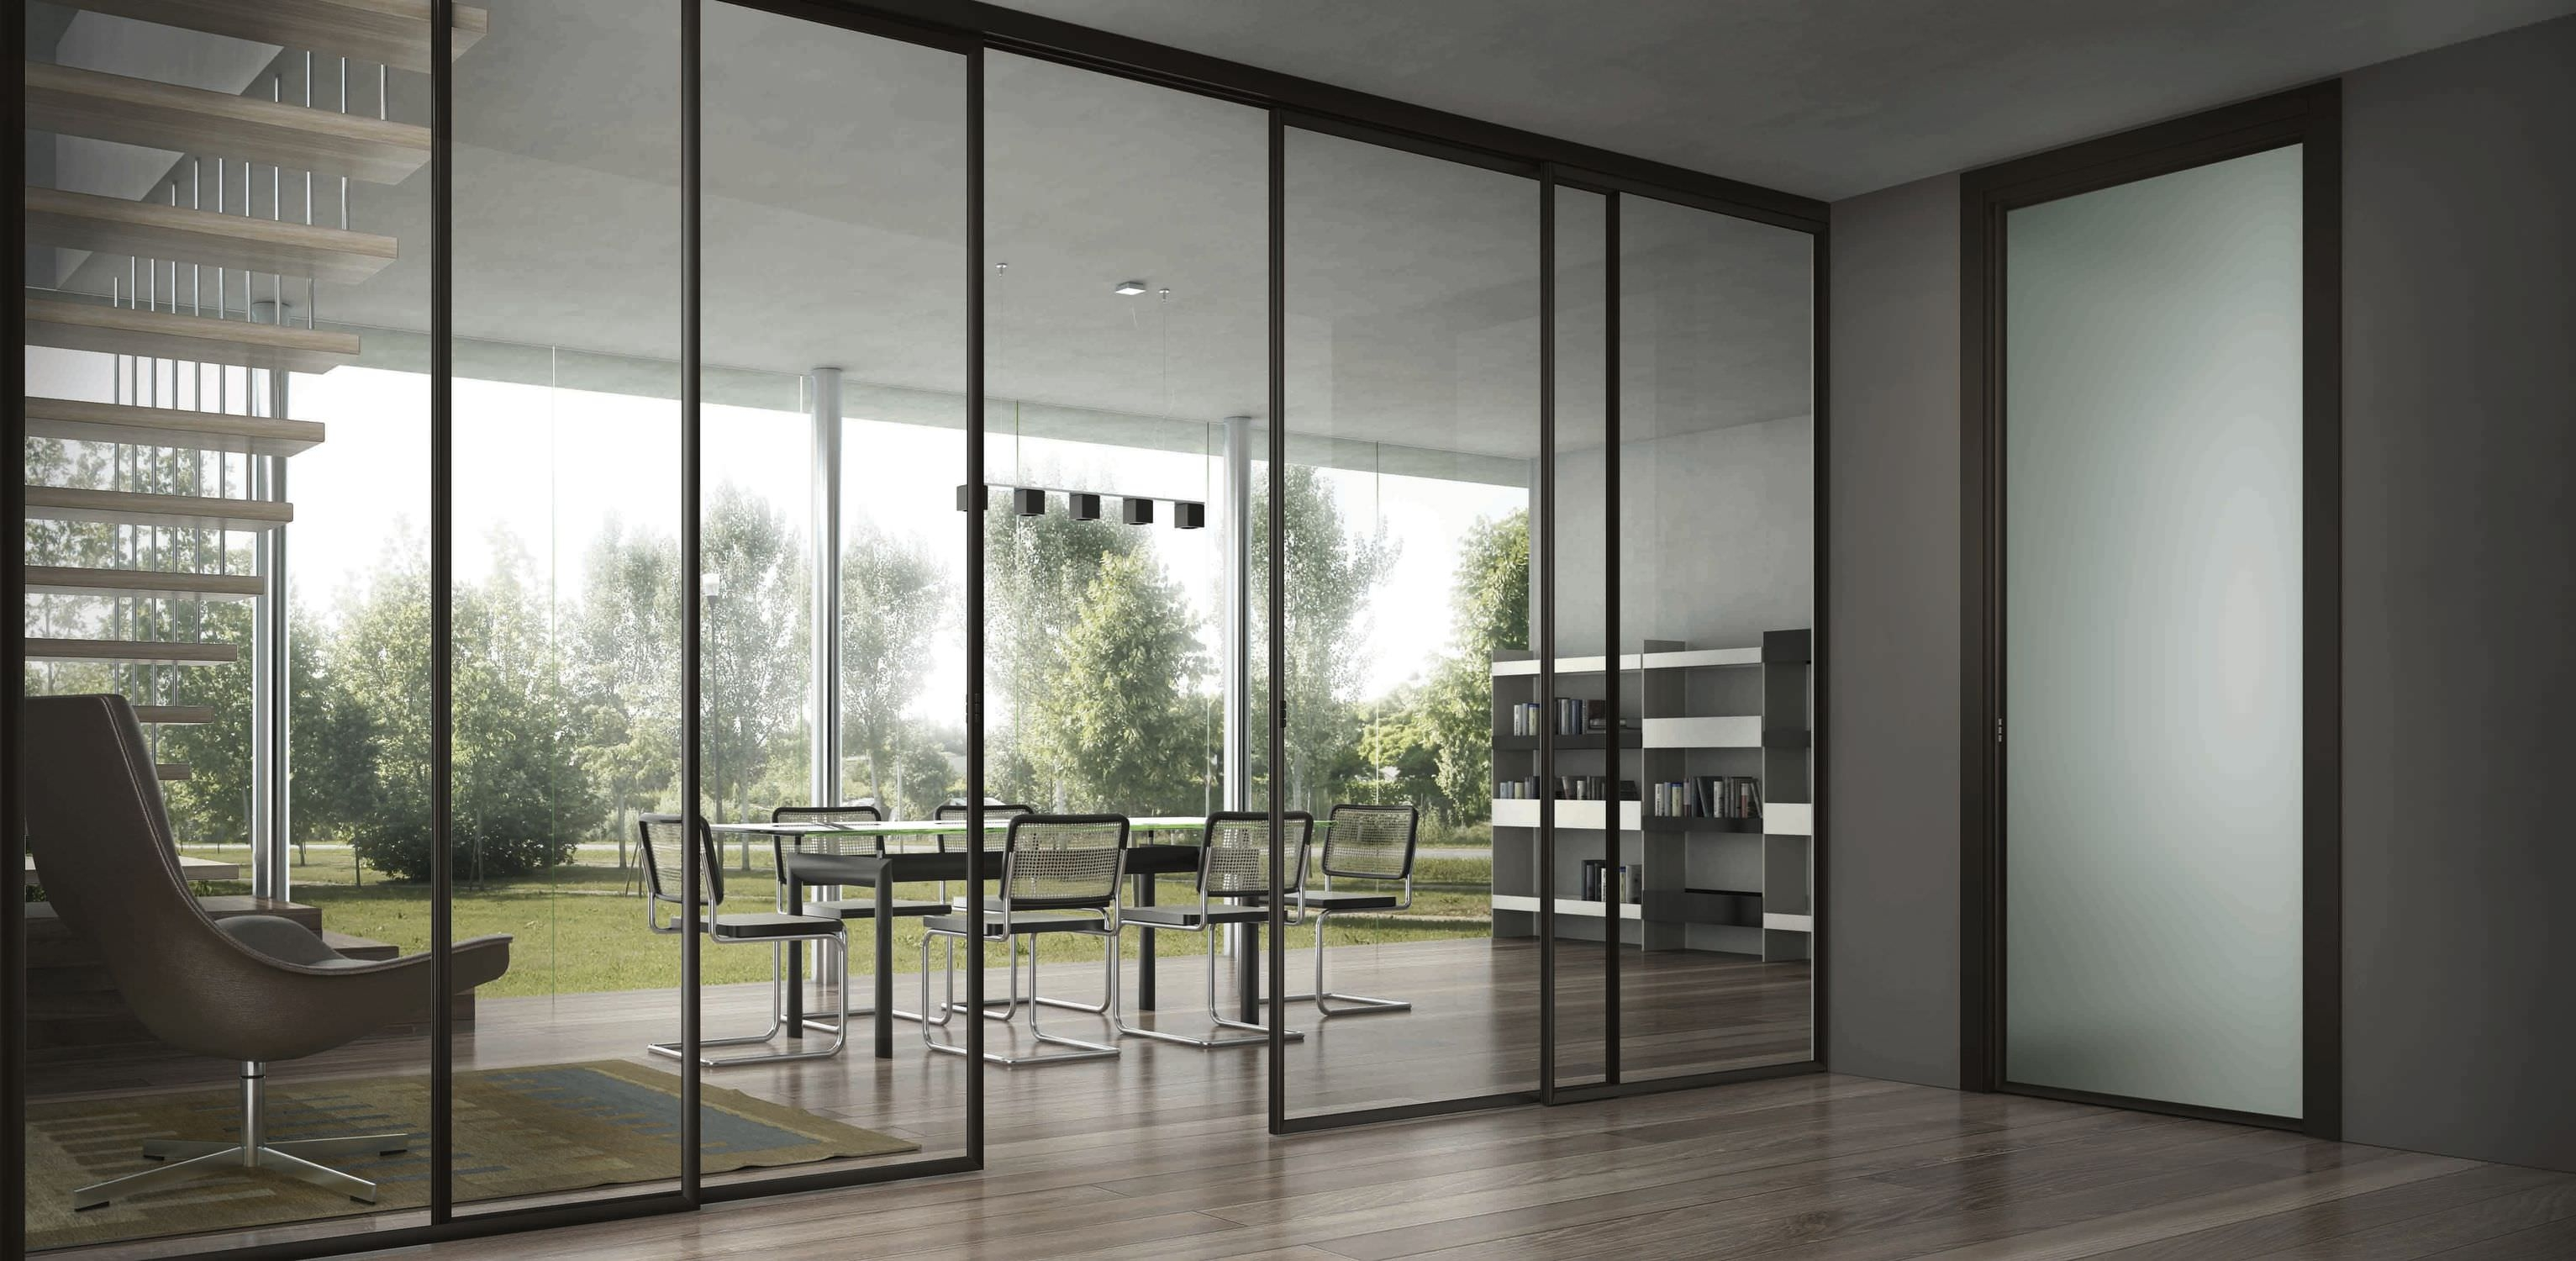 Fire Rated Sliding Doors GlassFire Rated Sliding Doors Glass